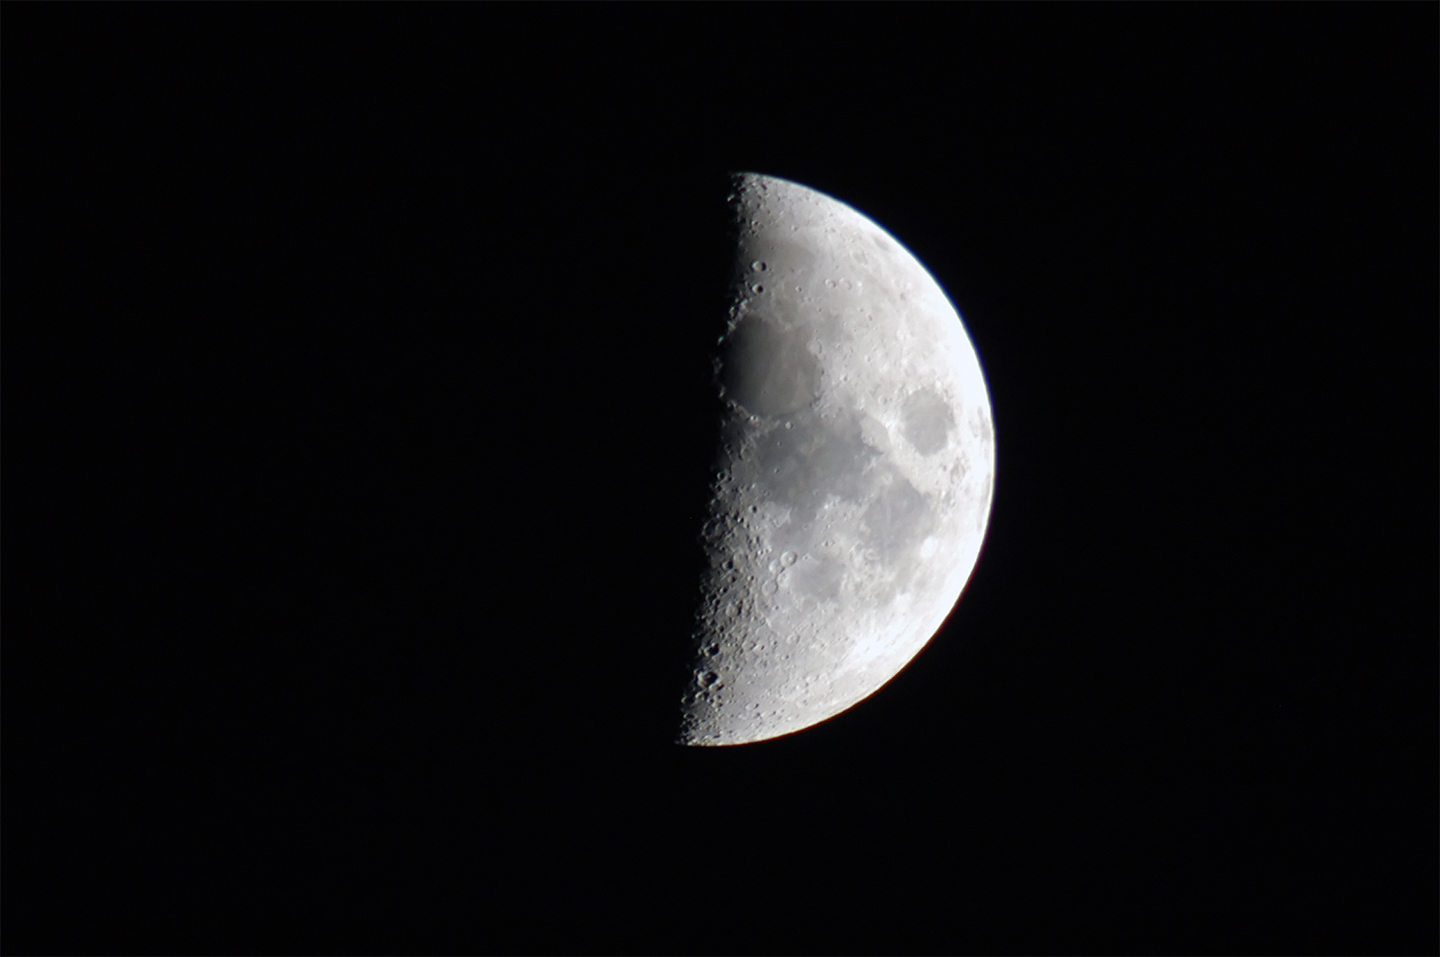 Image of a first quarter moon.